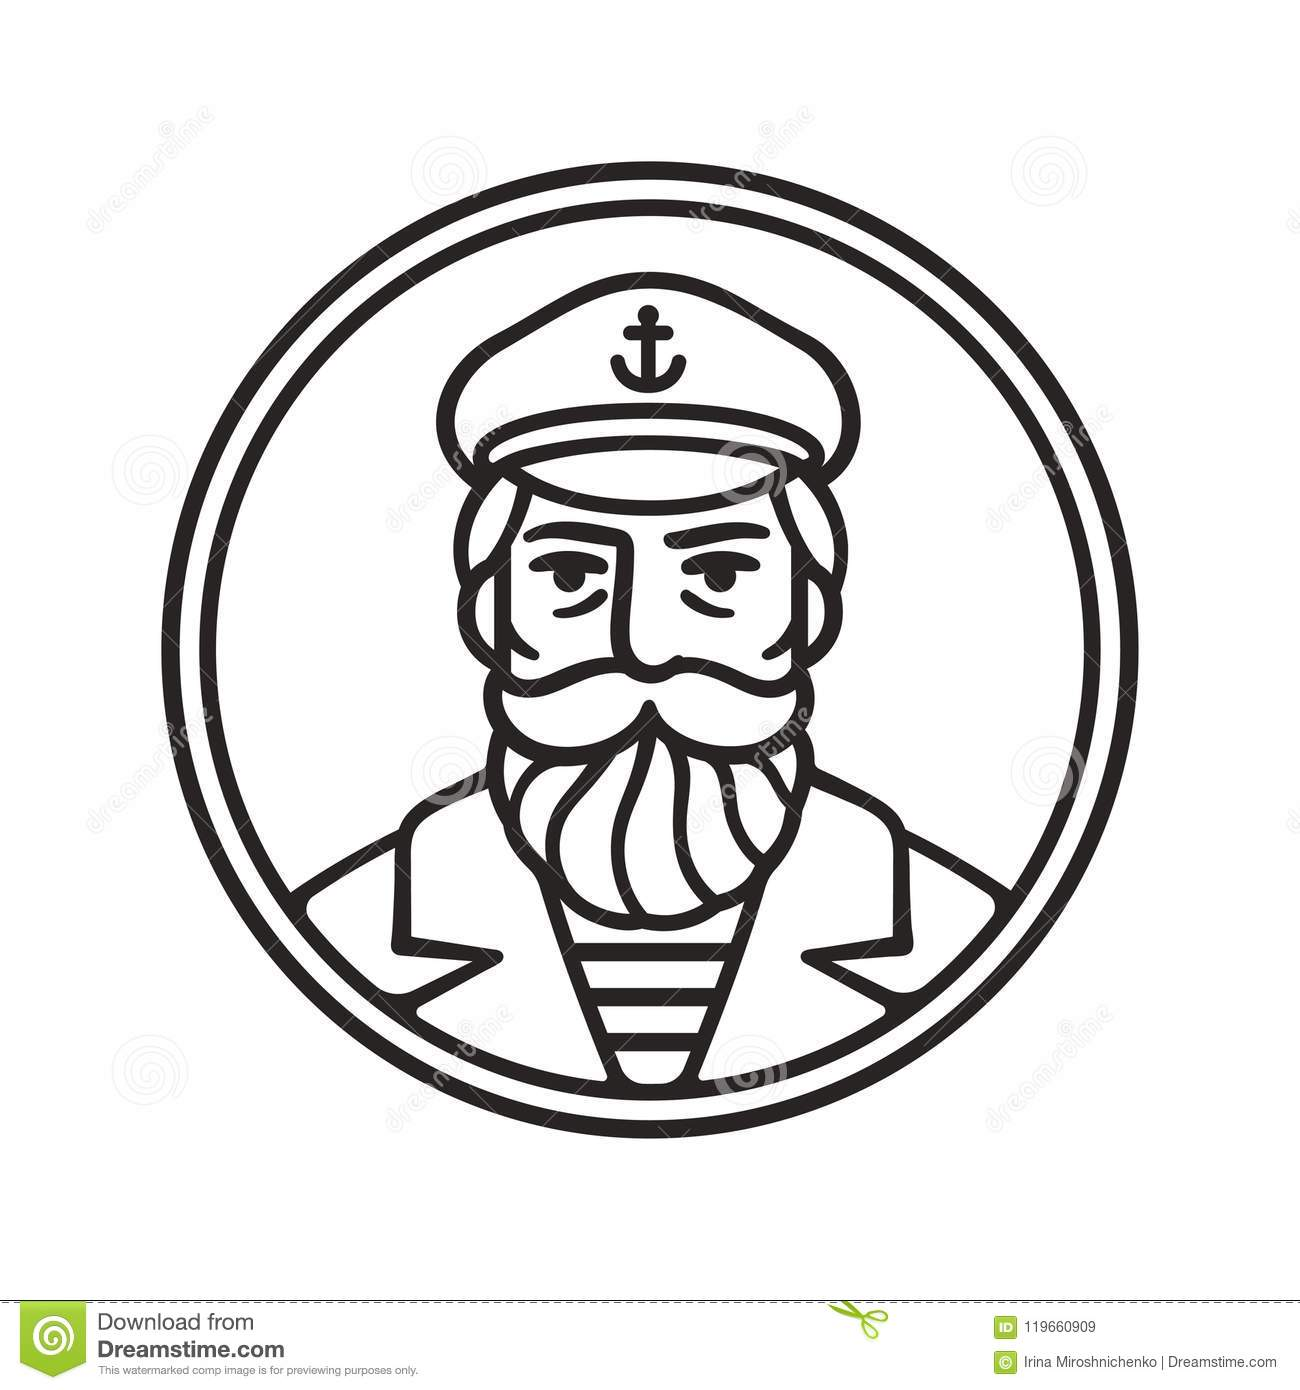 Captain Cartoons, Illustrations & Vector Stock Images